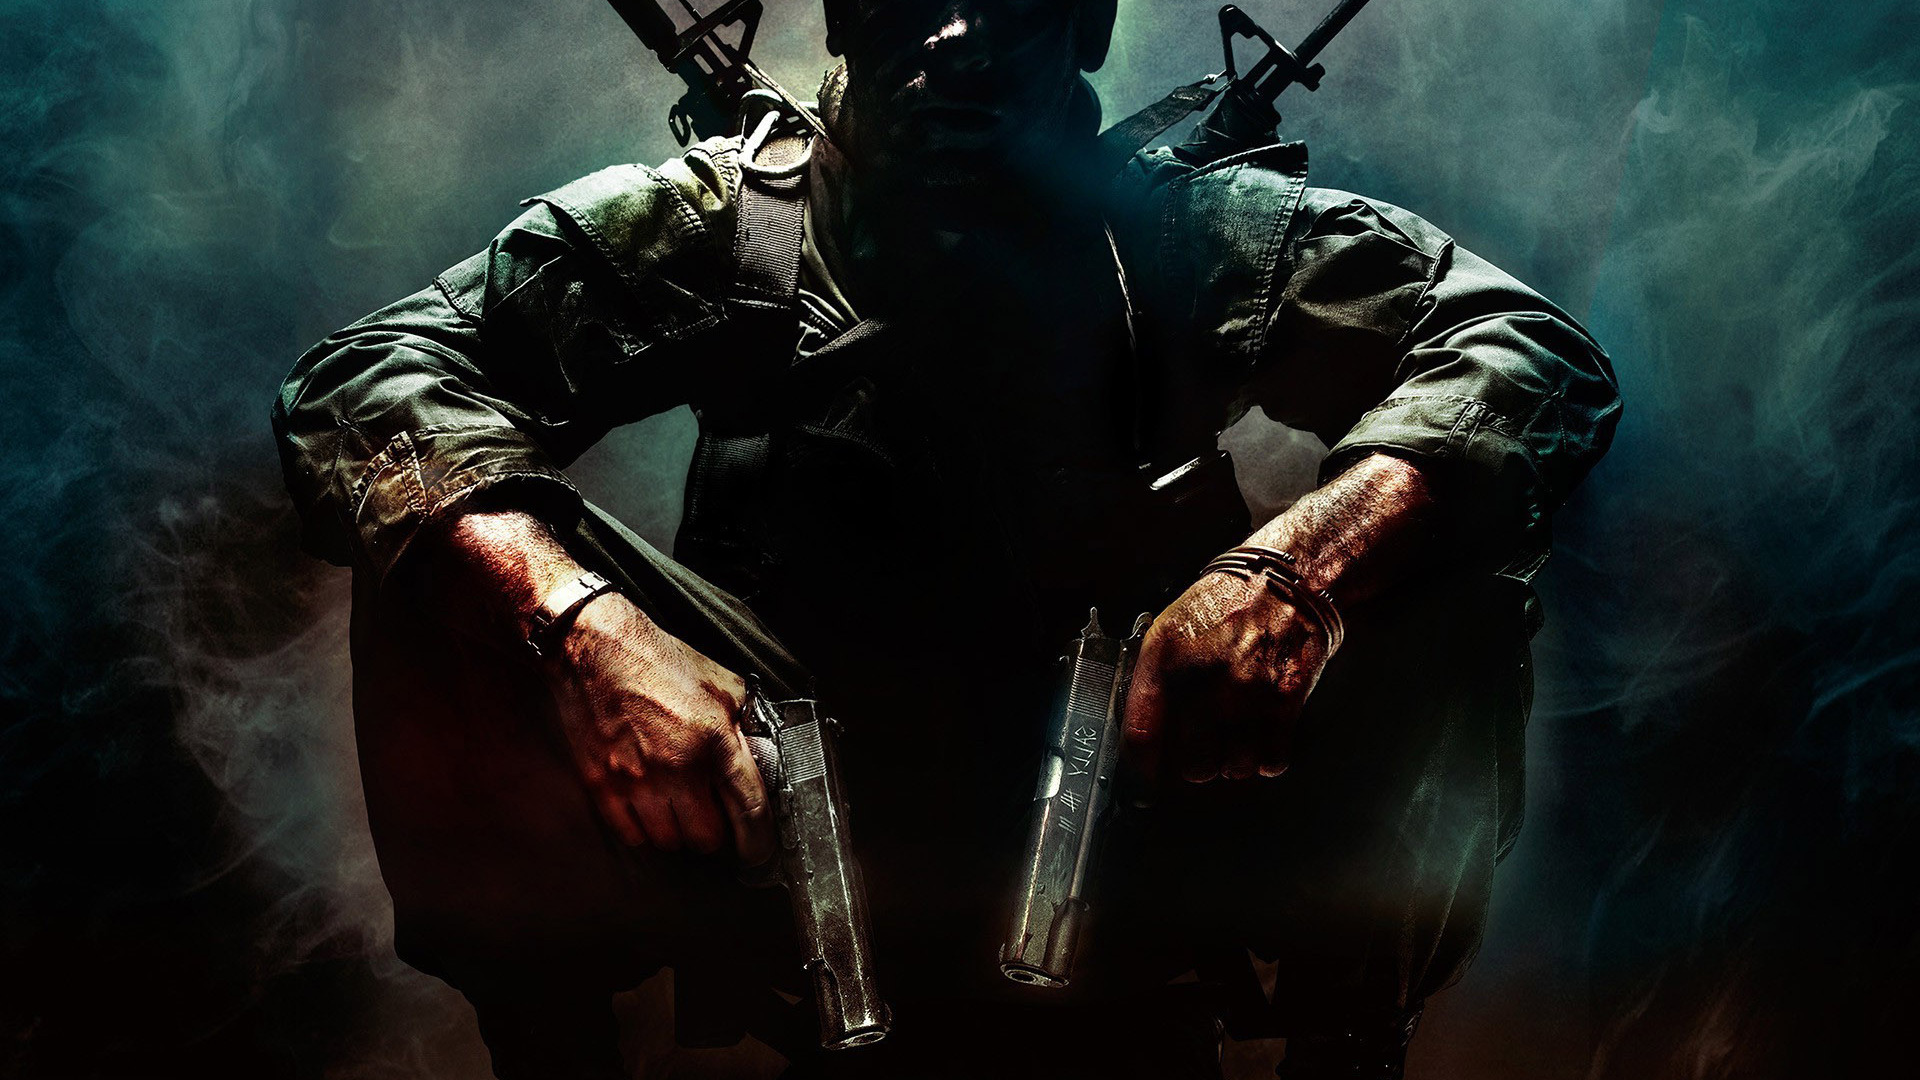 Free Download Download Call Of Duty A Black Ops Wallpaper